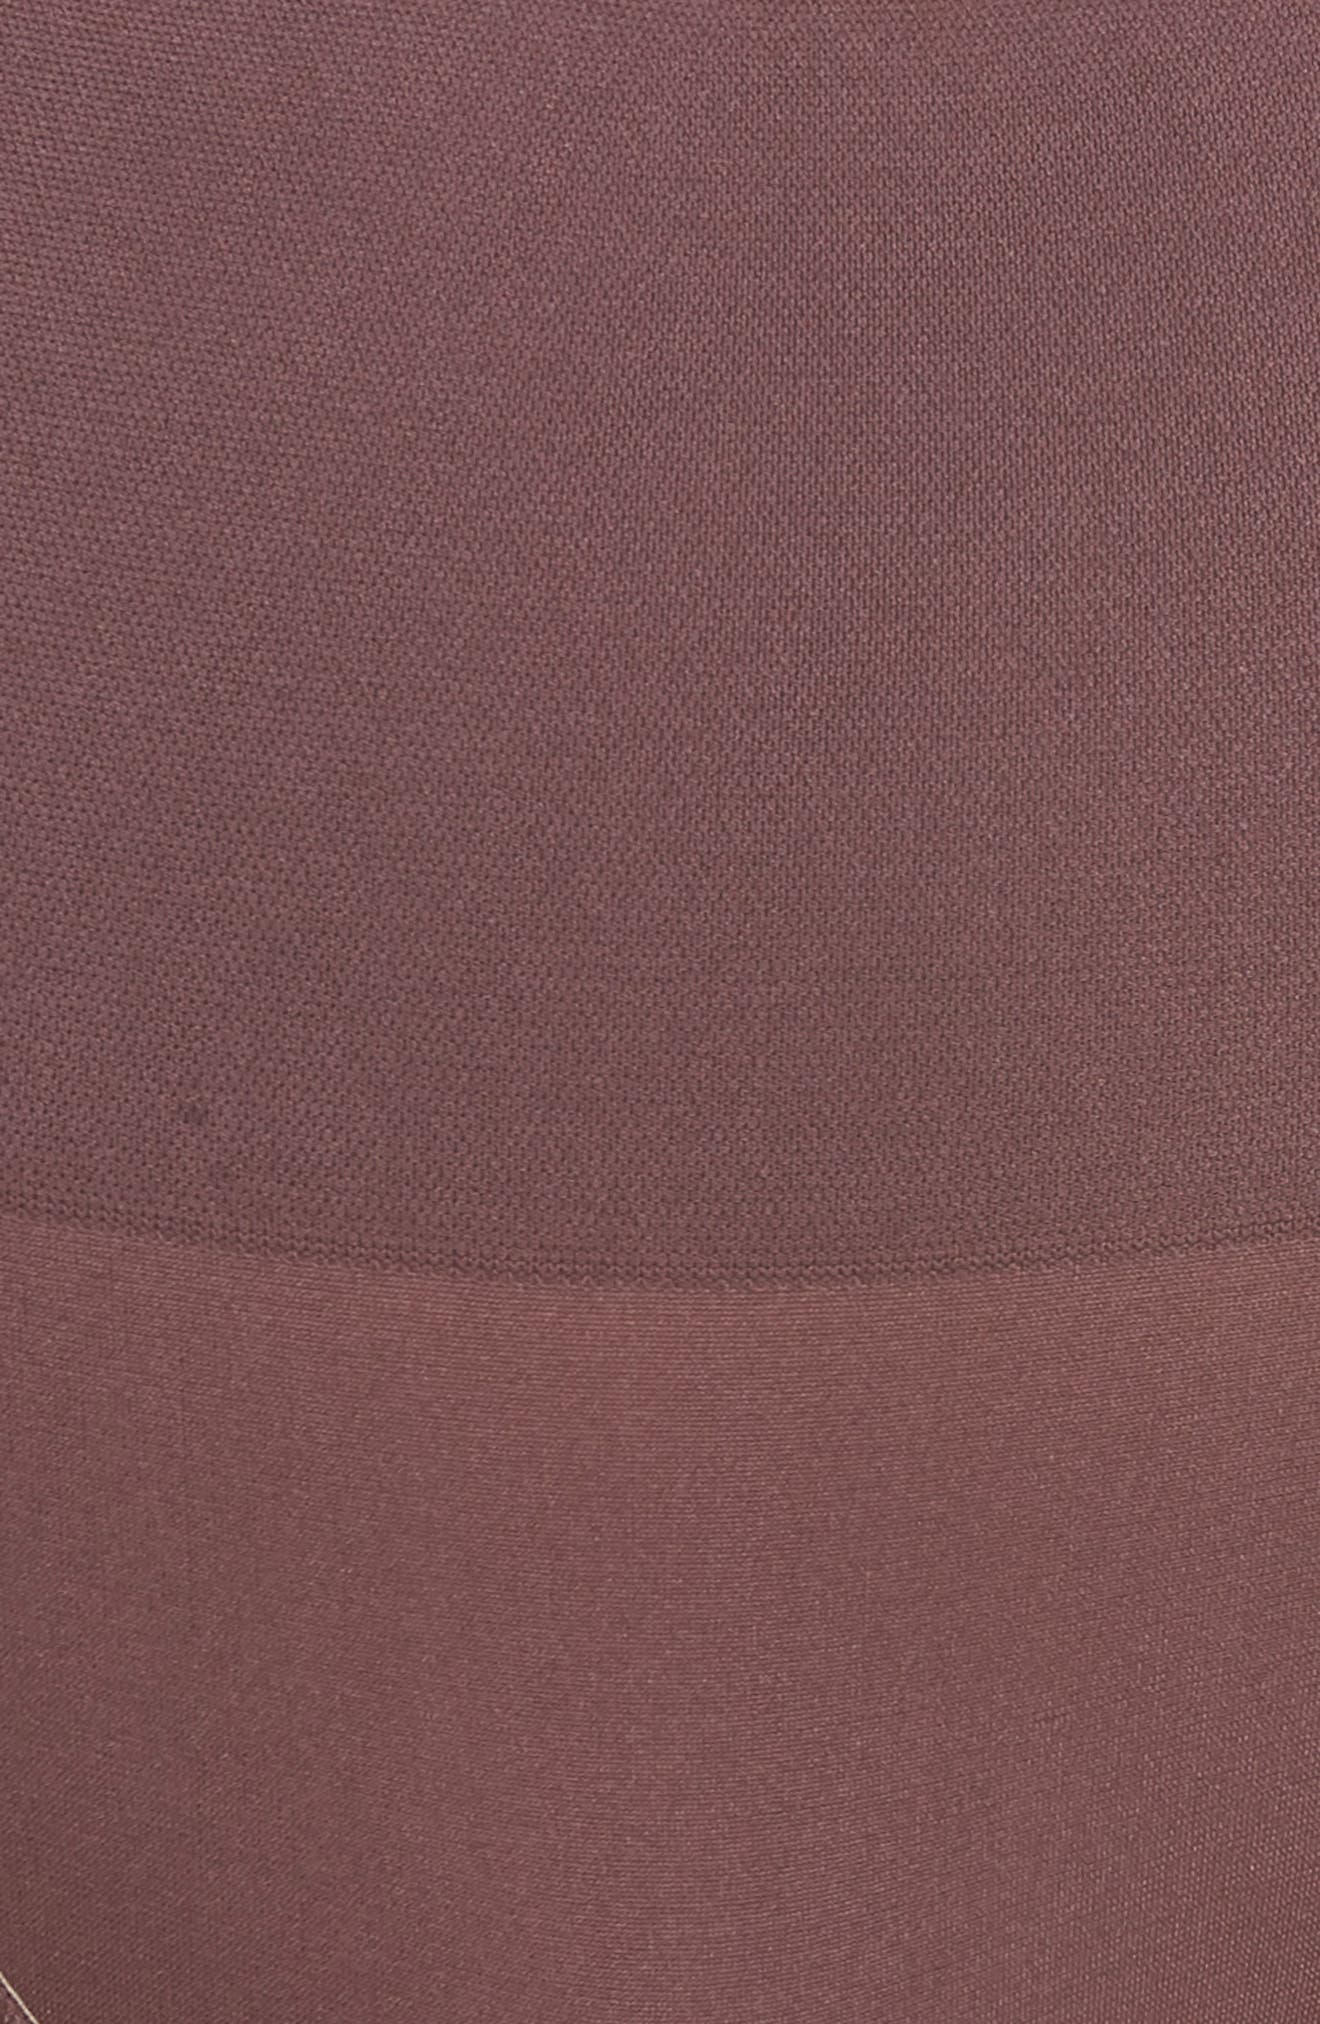 Ultralight Seamless Shaping Thong,                             Alternate thumbnail 5, color,                             HUCKLEBERRY